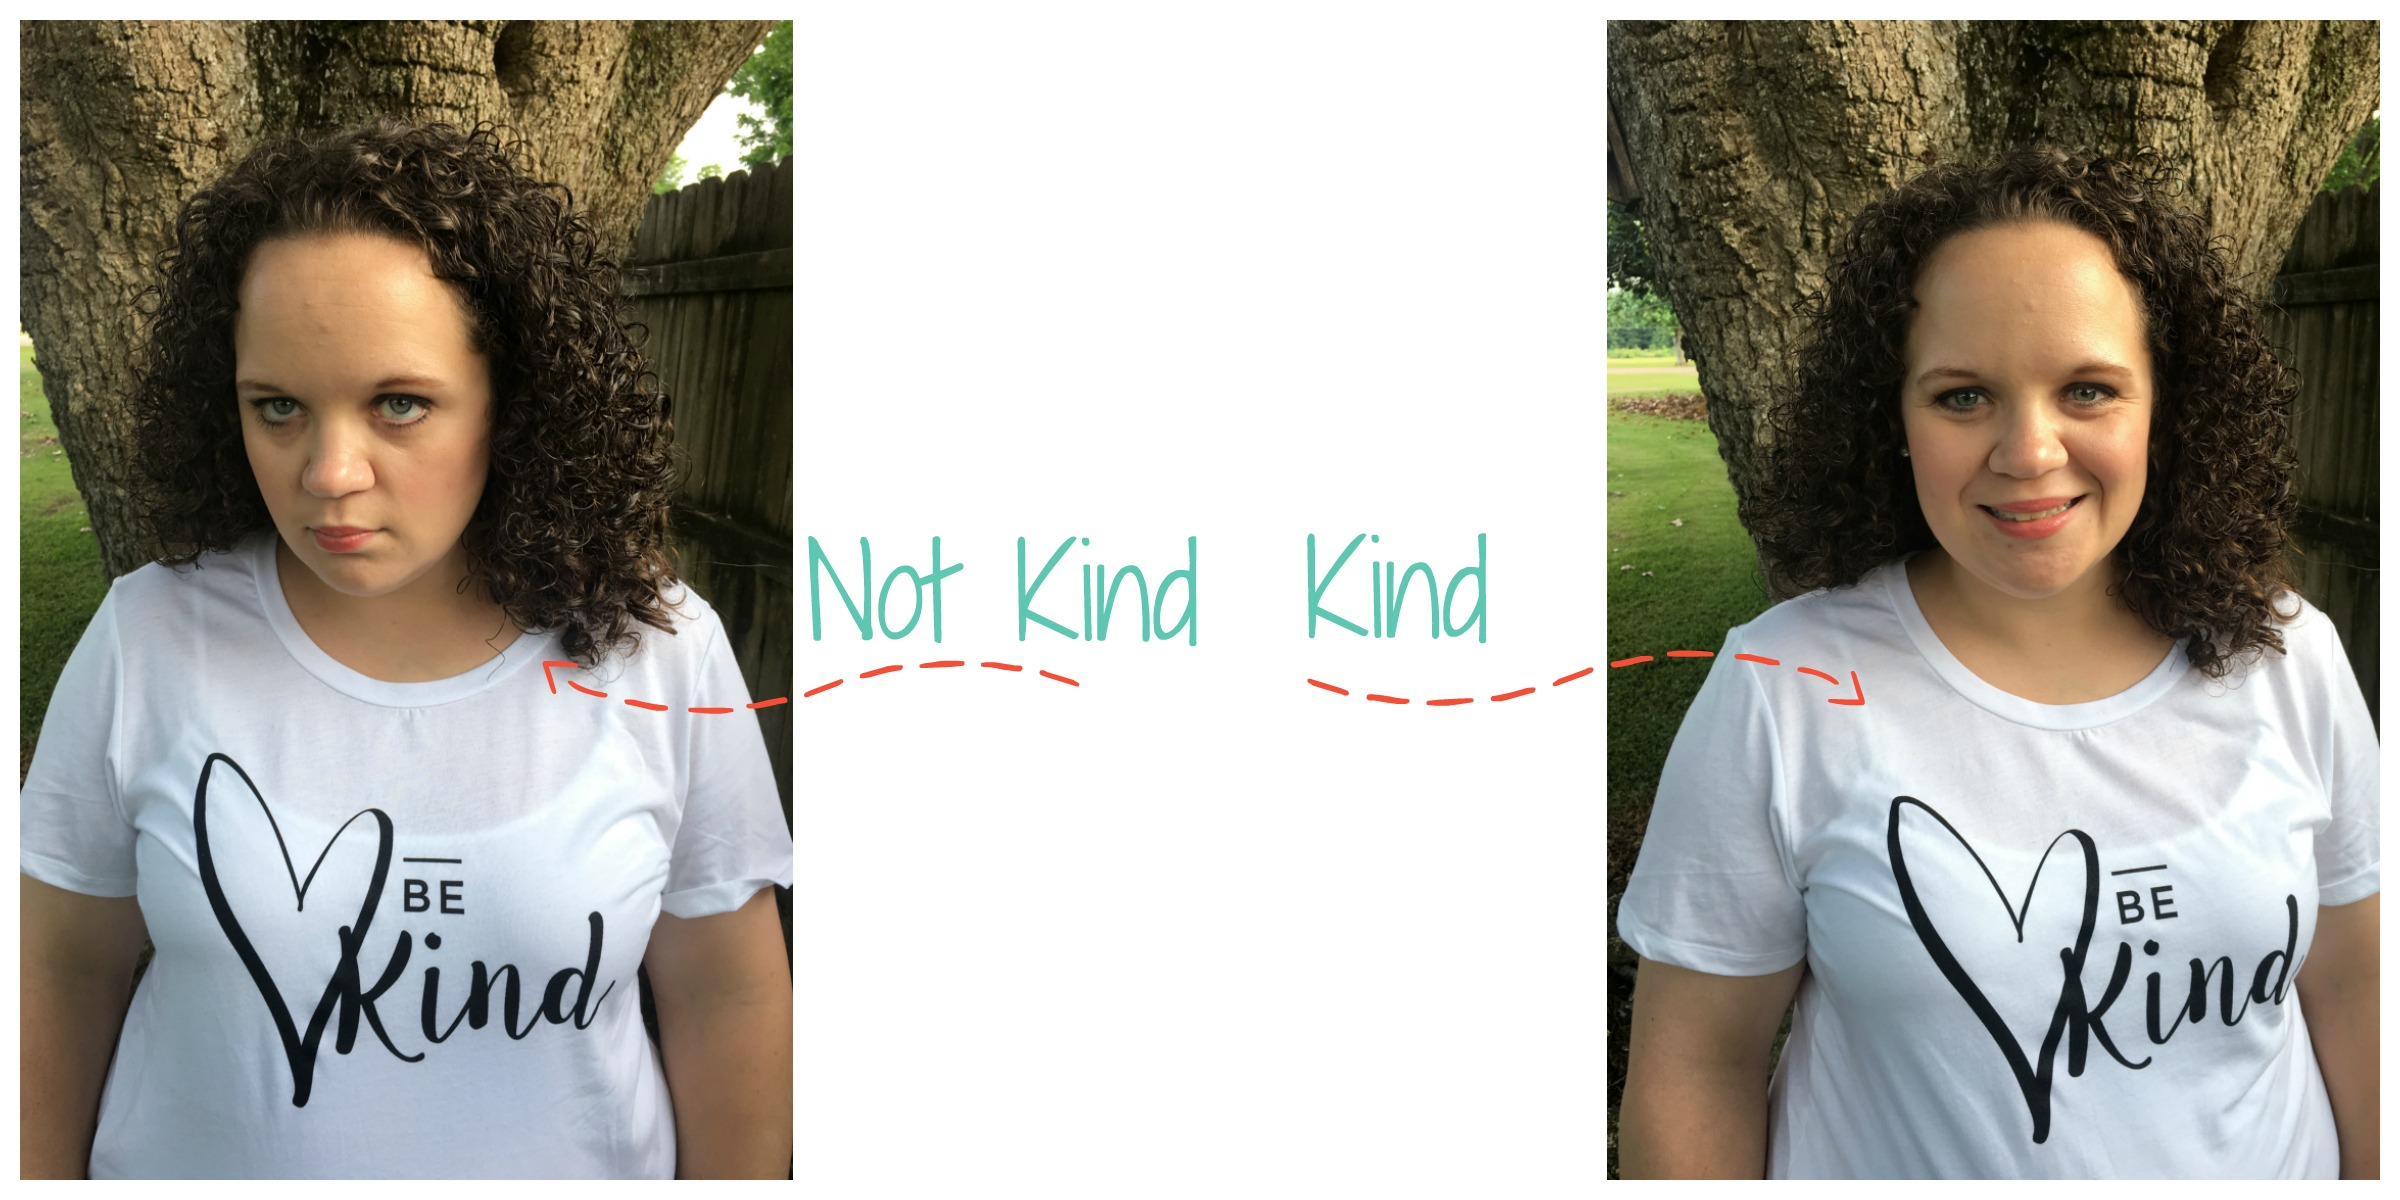 kind pictures